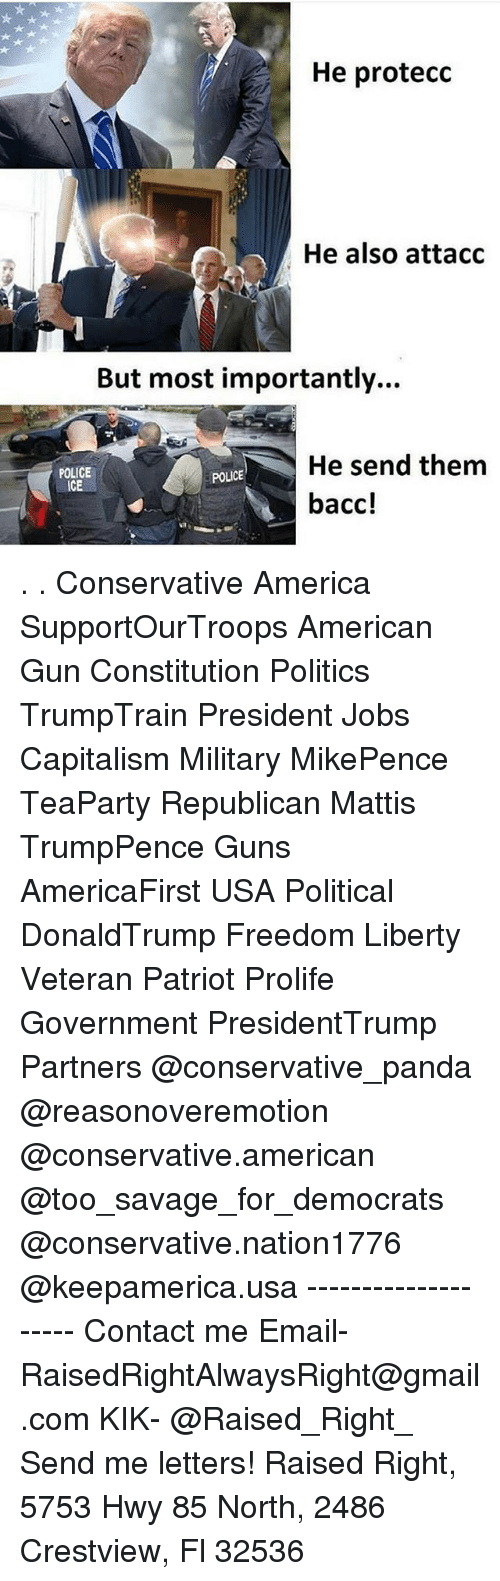 America, Guns, and Memes: He protecc  He also attaco  But most importantly...  He send them  bacc!  POLICE  ICE  POLICE . . Conservative America SupportOurTroops American Gun Constitution Politics TrumpTrain President Jobs Capitalism Military MikePence TeaParty Republican Mattis TrumpPence Guns AmericaFirst USA Political DonaldTrump Freedom Liberty Veteran Patriot Prolife Government PresidentTrump Partners @conservative_panda @reasonoveremotion @conservative.american @too_savage_for_democrats @conservative.nation1776 @keepamerica.usa -------------------- Contact me ●Email- RaisedRightAlwaysRight@gmail.com ●KIK- @Raised_Right_ ●Send me letters! Raised Right, 5753 Hwy 85 North, 2486 Crestview, Fl 32536